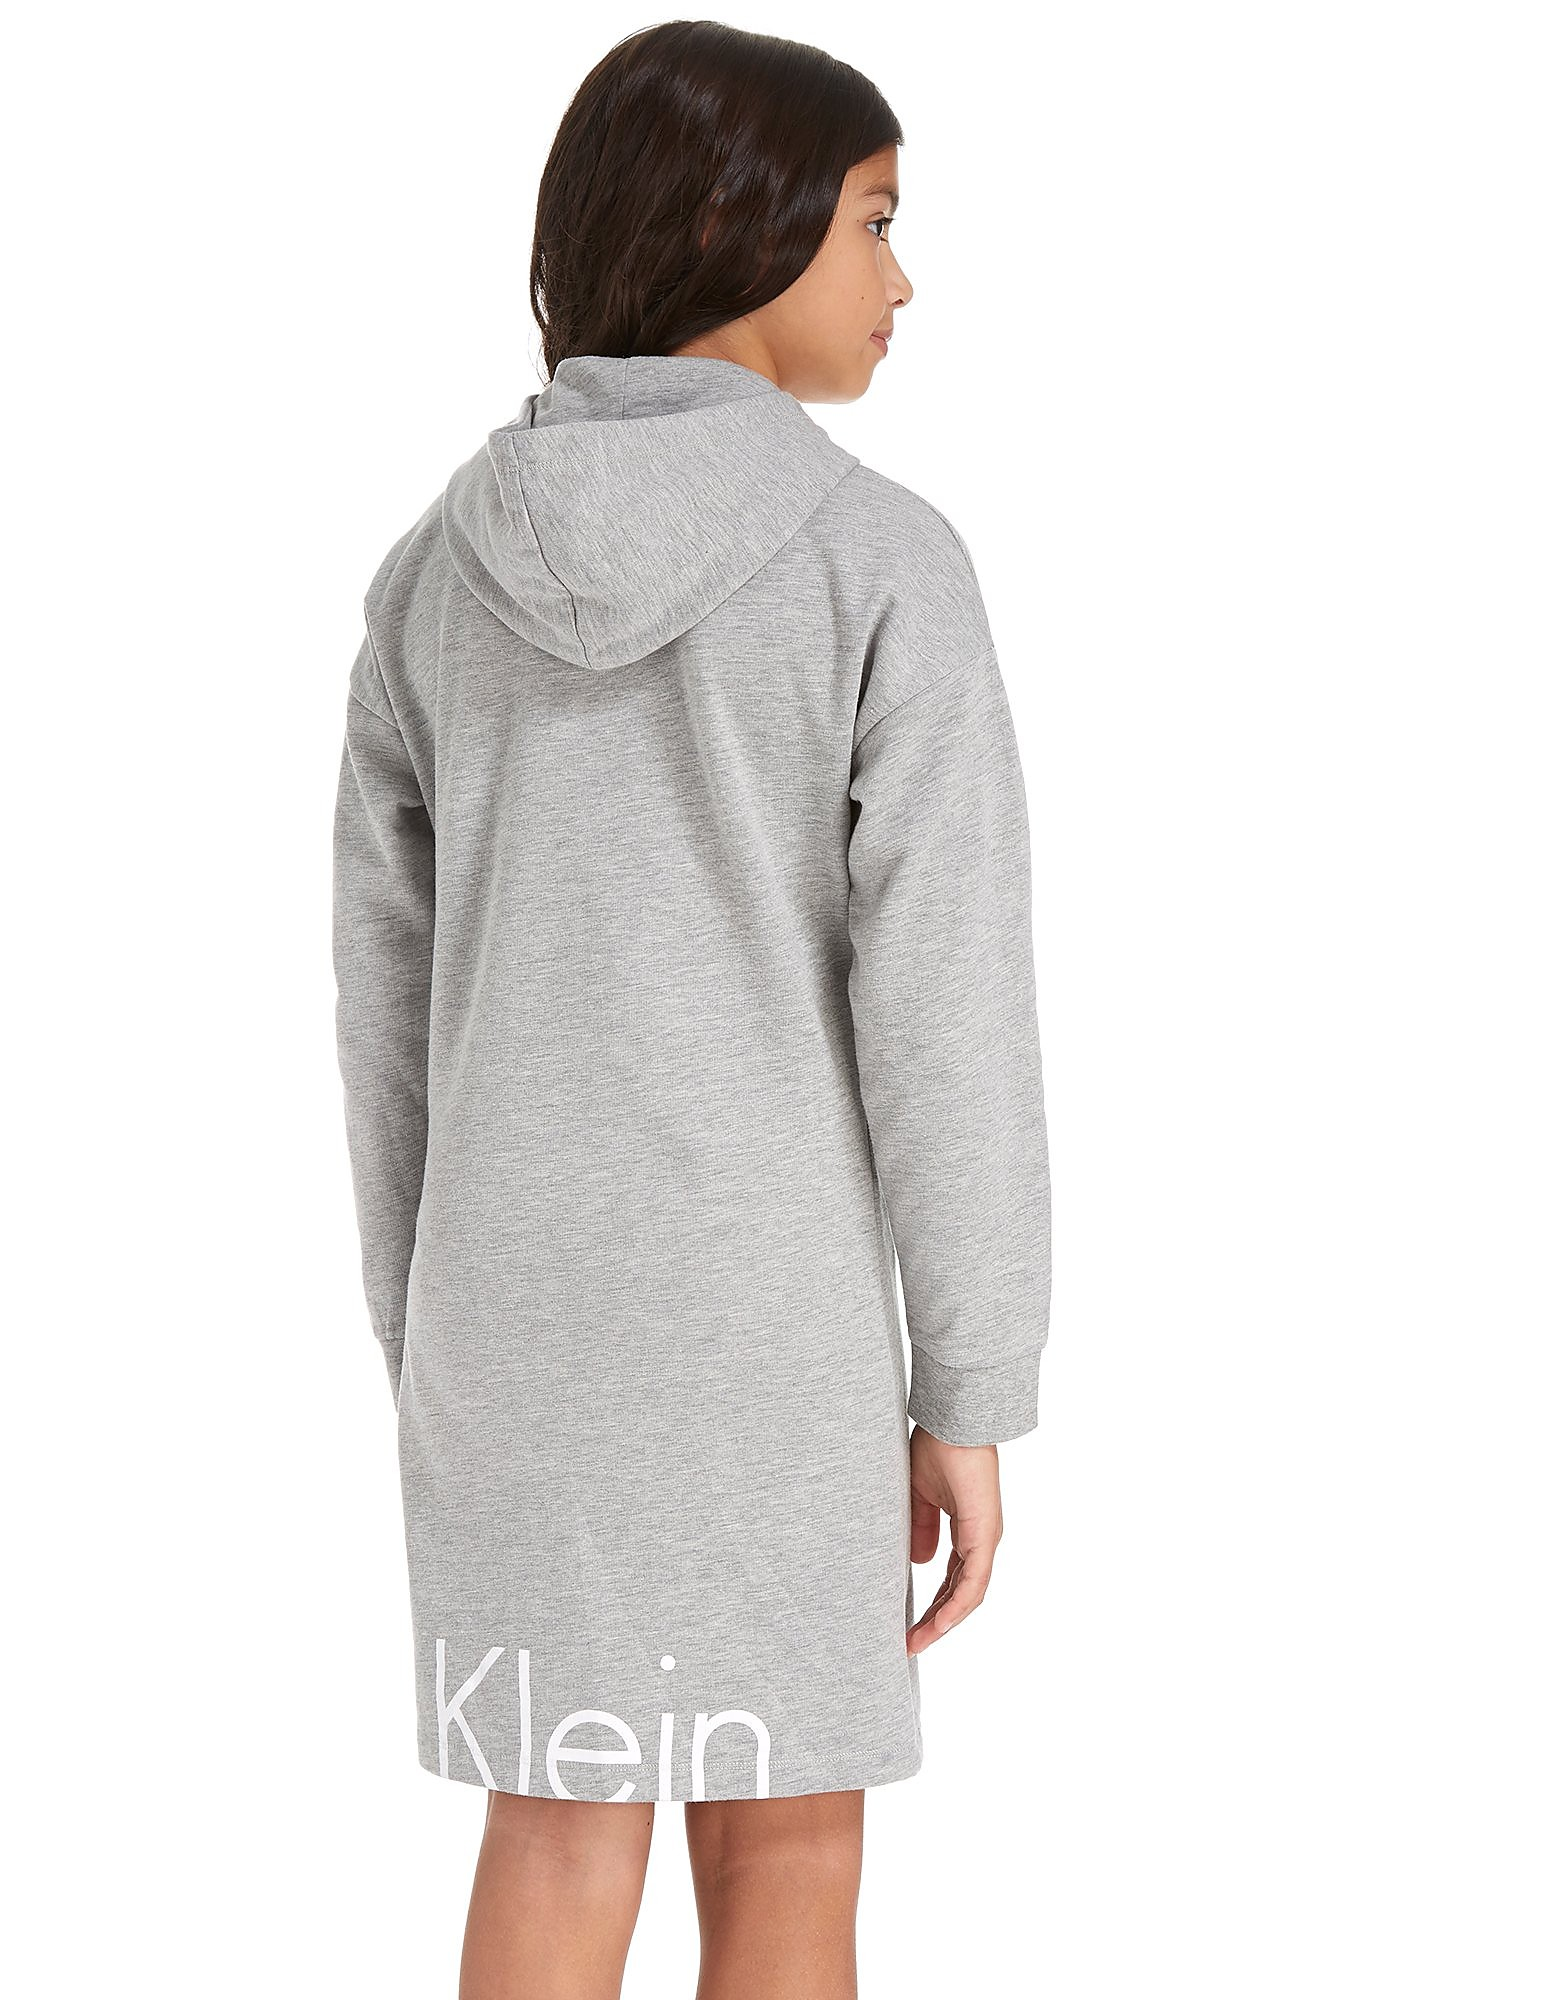 Calvin Klein Girls' Hooded Dress Junior